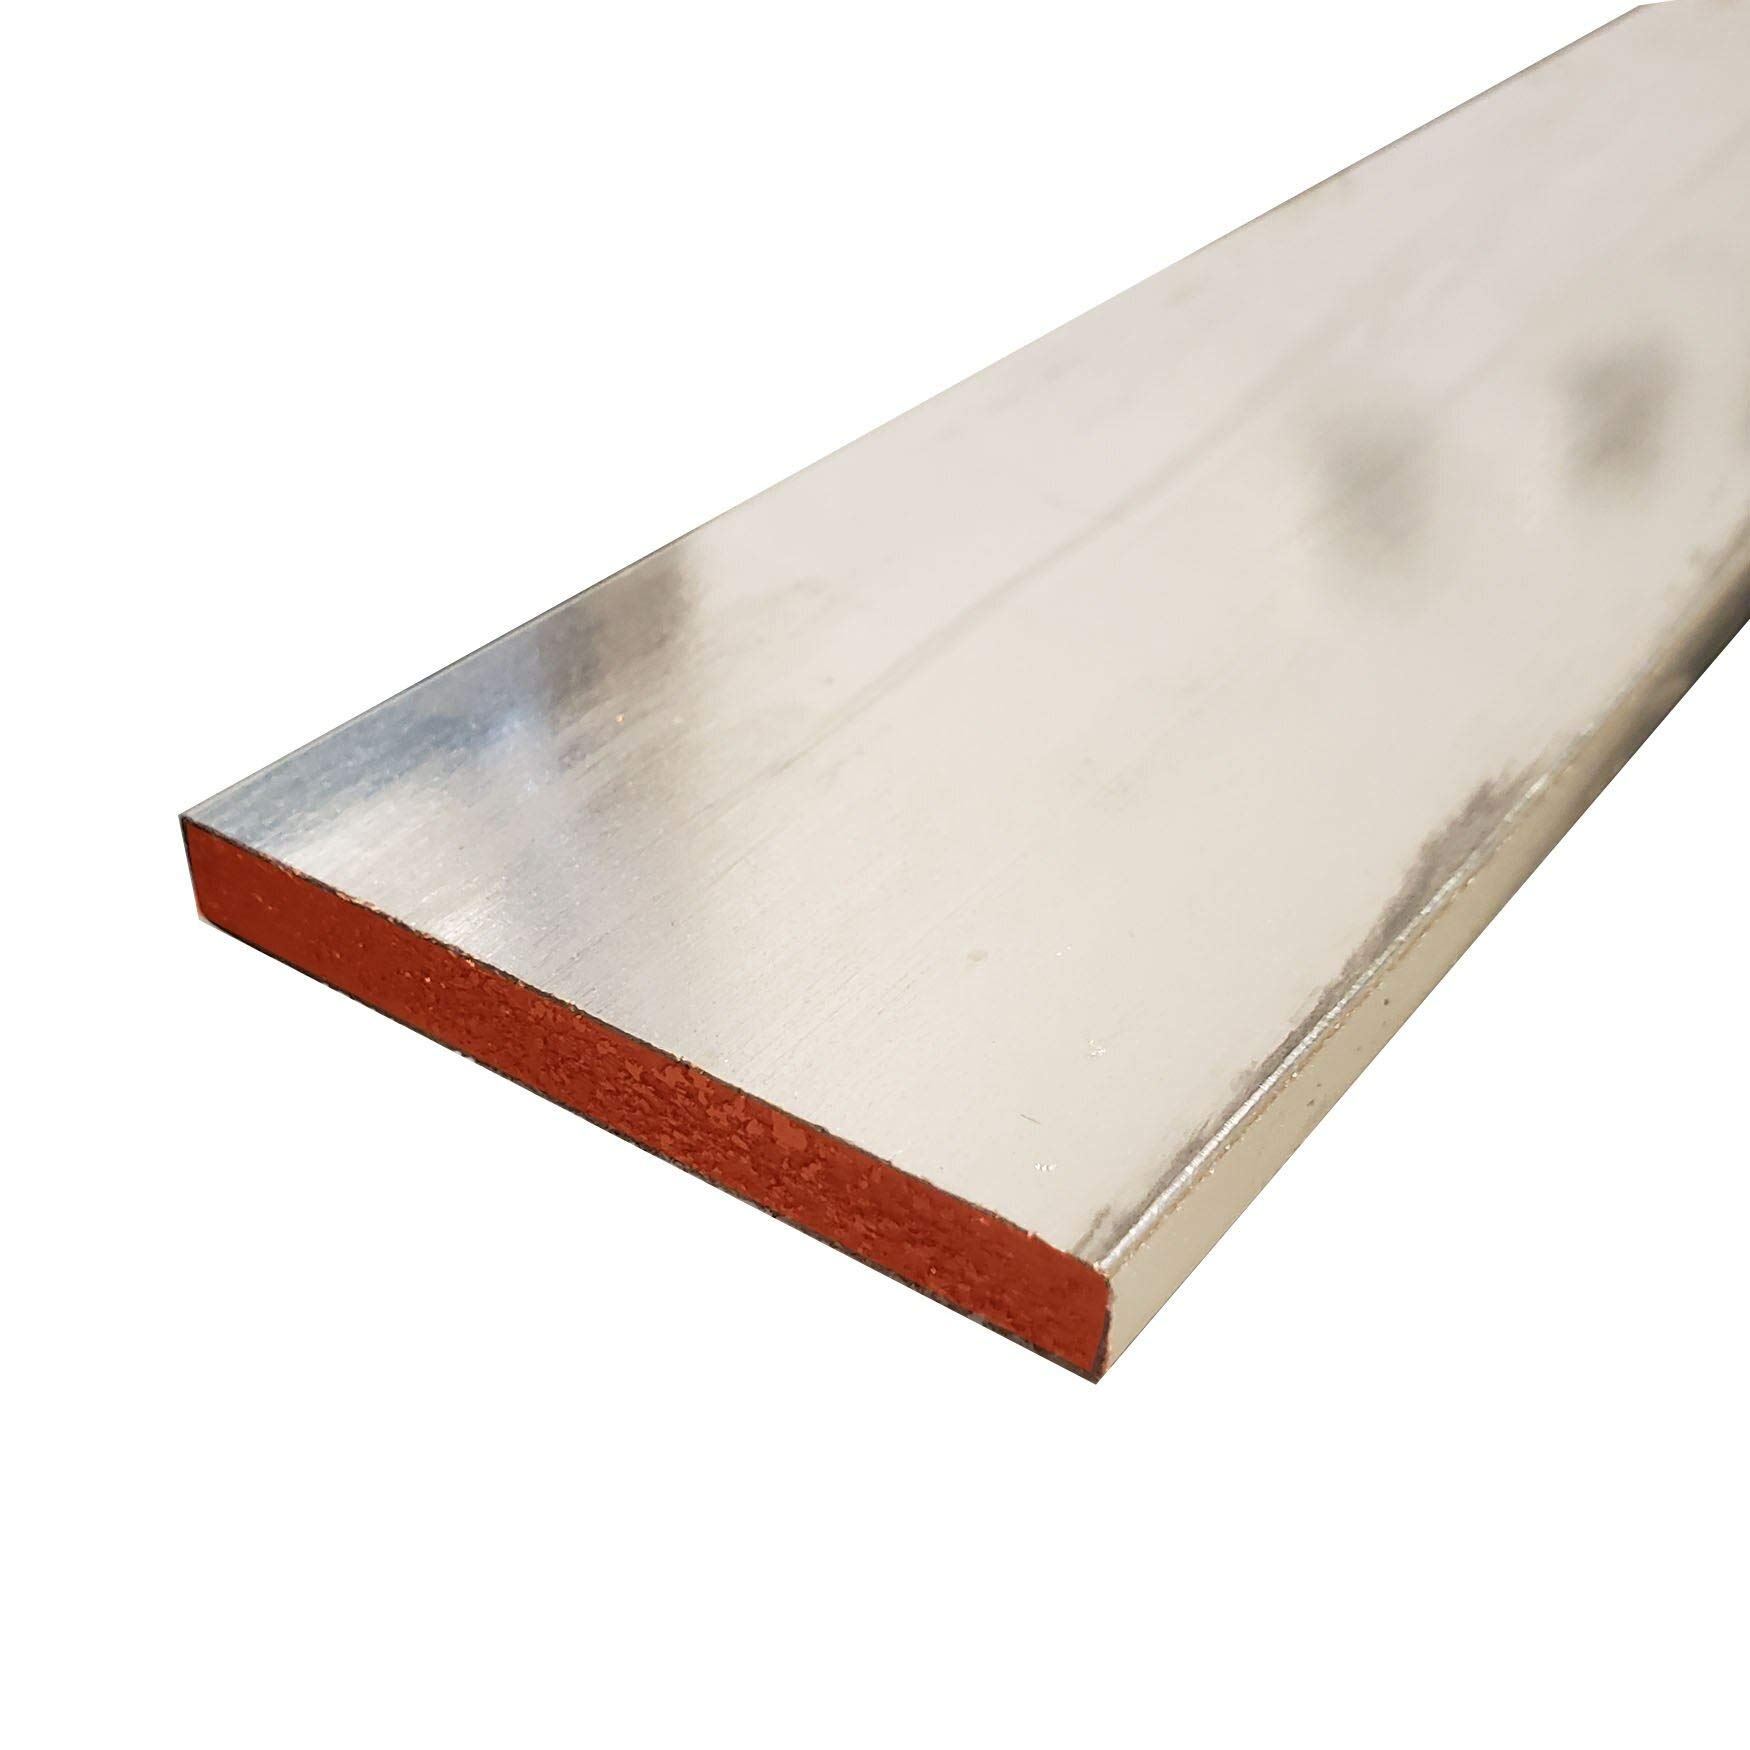 Online Metal Supply C110 Tin Coated Copper Flat (Buss) Bar, 1/4'' x 2'' x 36'' by Online Metal Supply